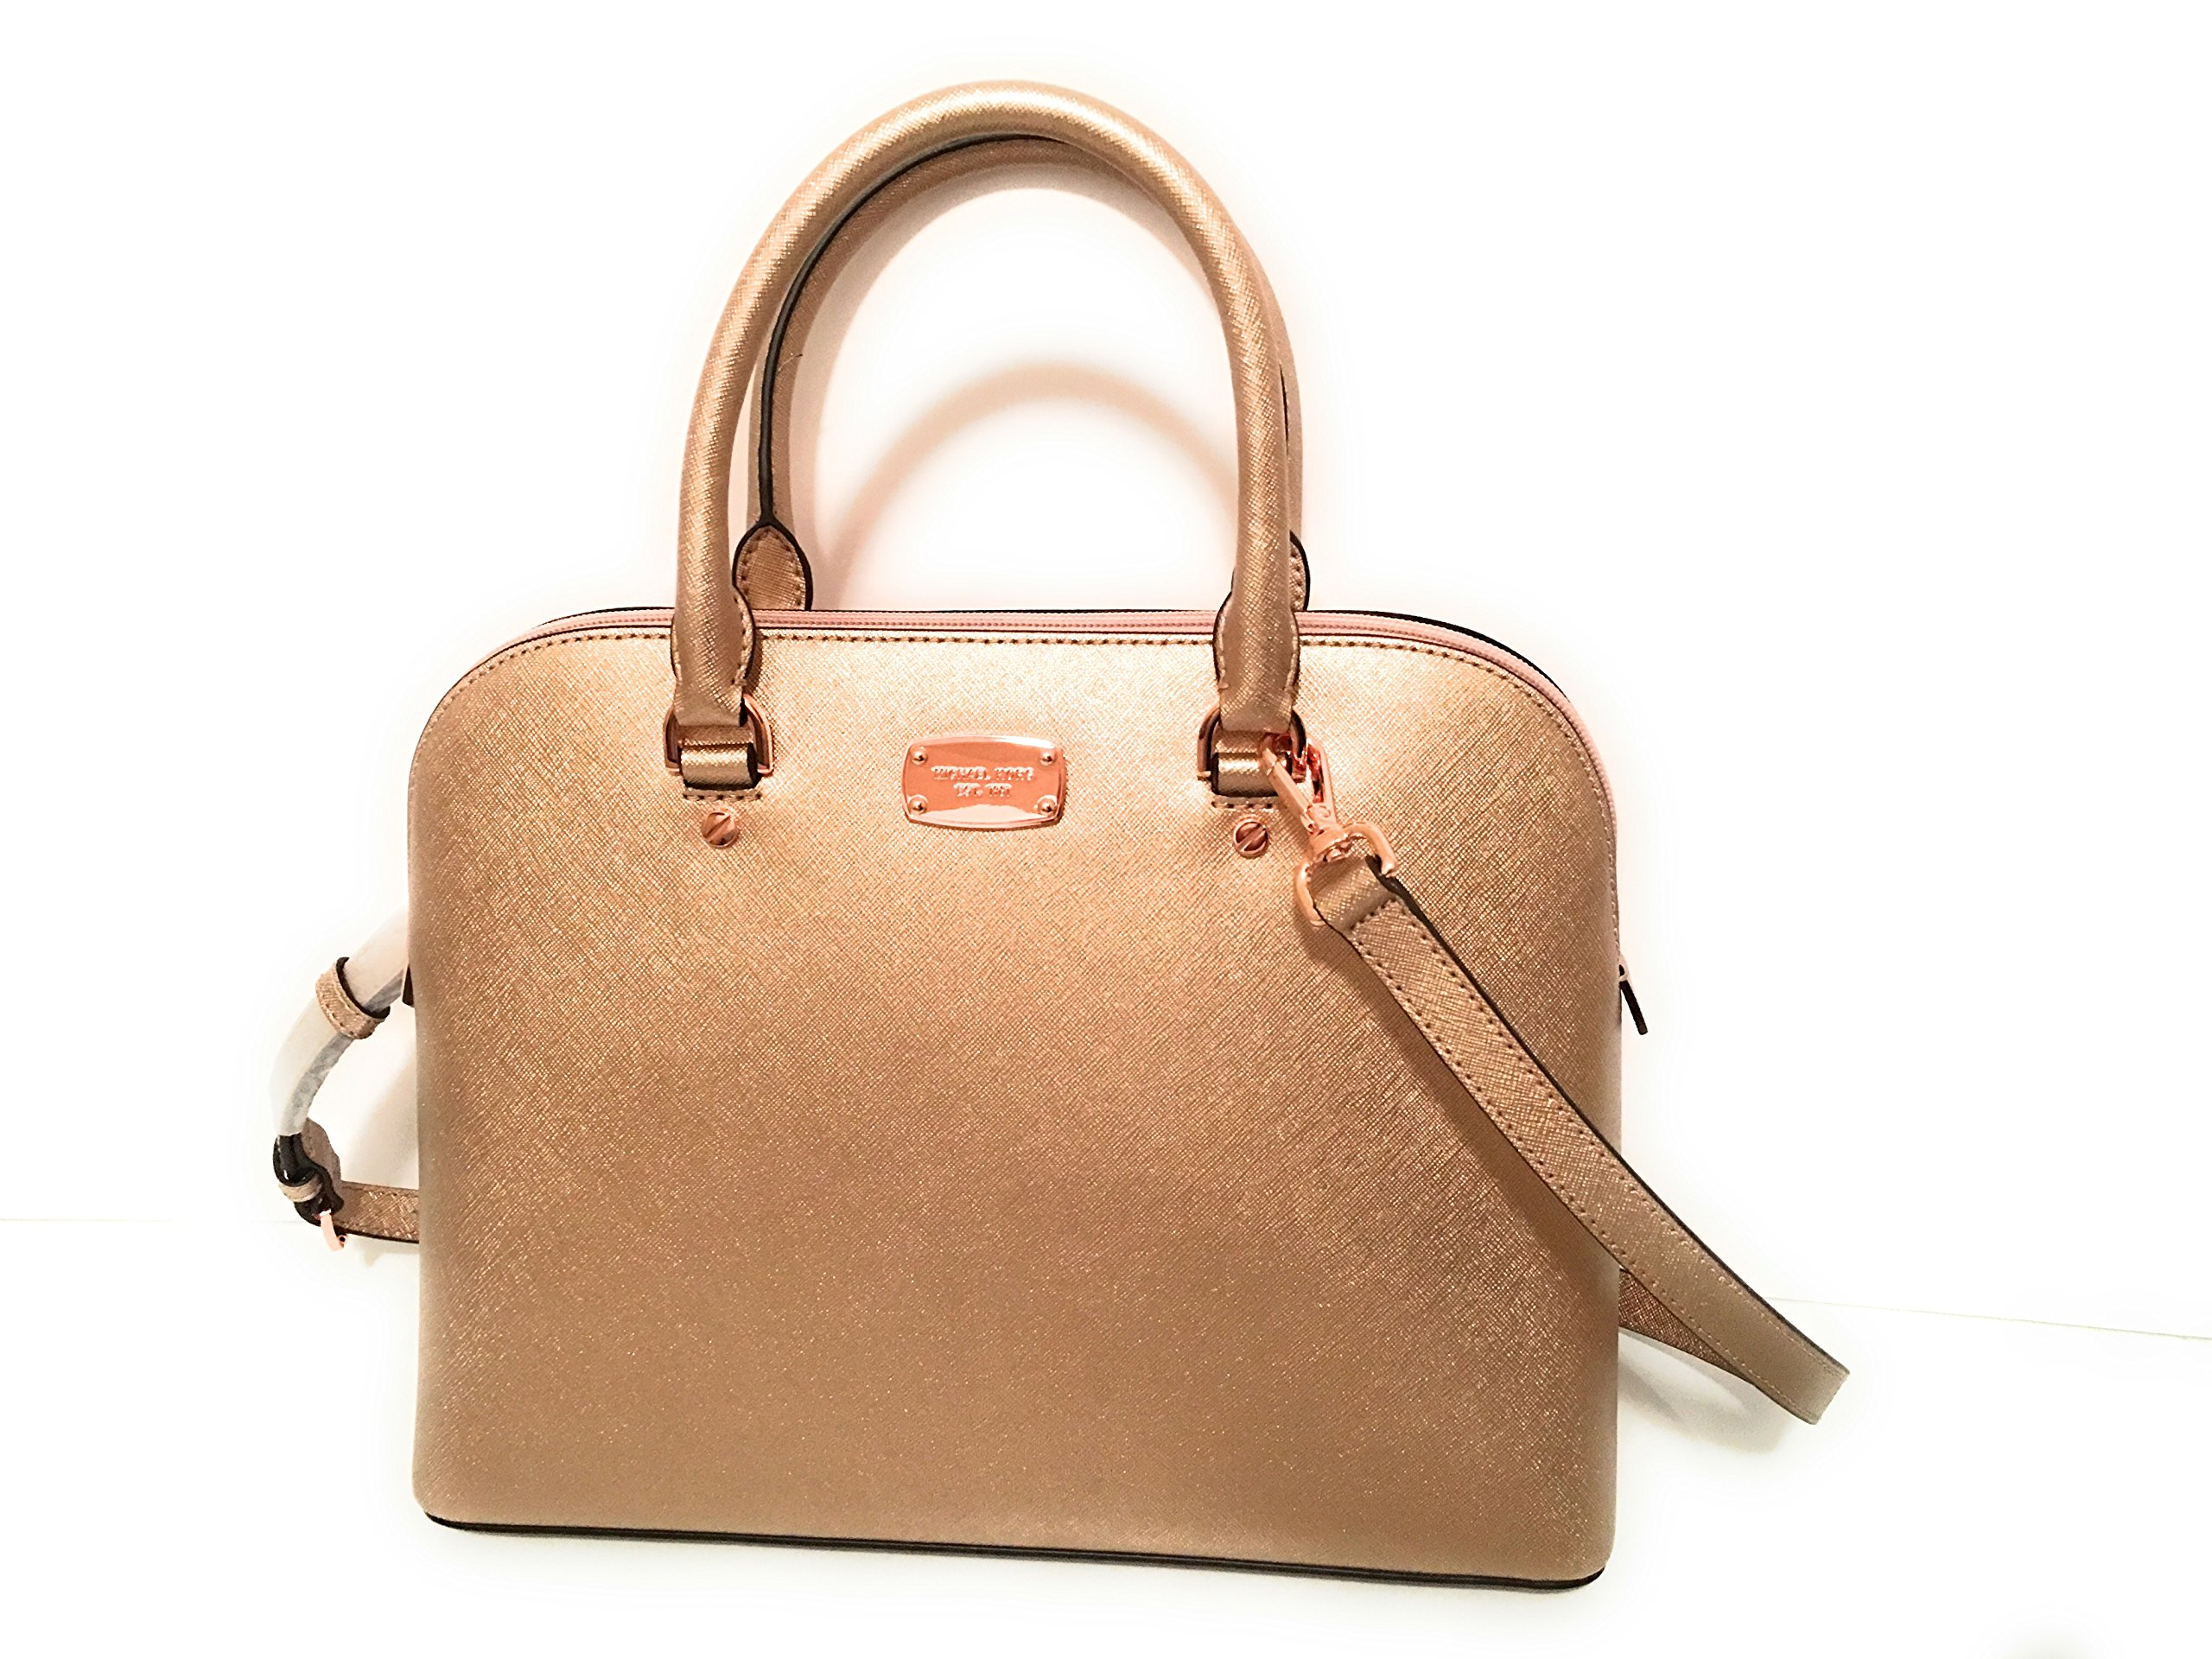 88d40a9a1802 Galleon - Michael Kors Cindy Large Dome Satchel Leather Rose Gold